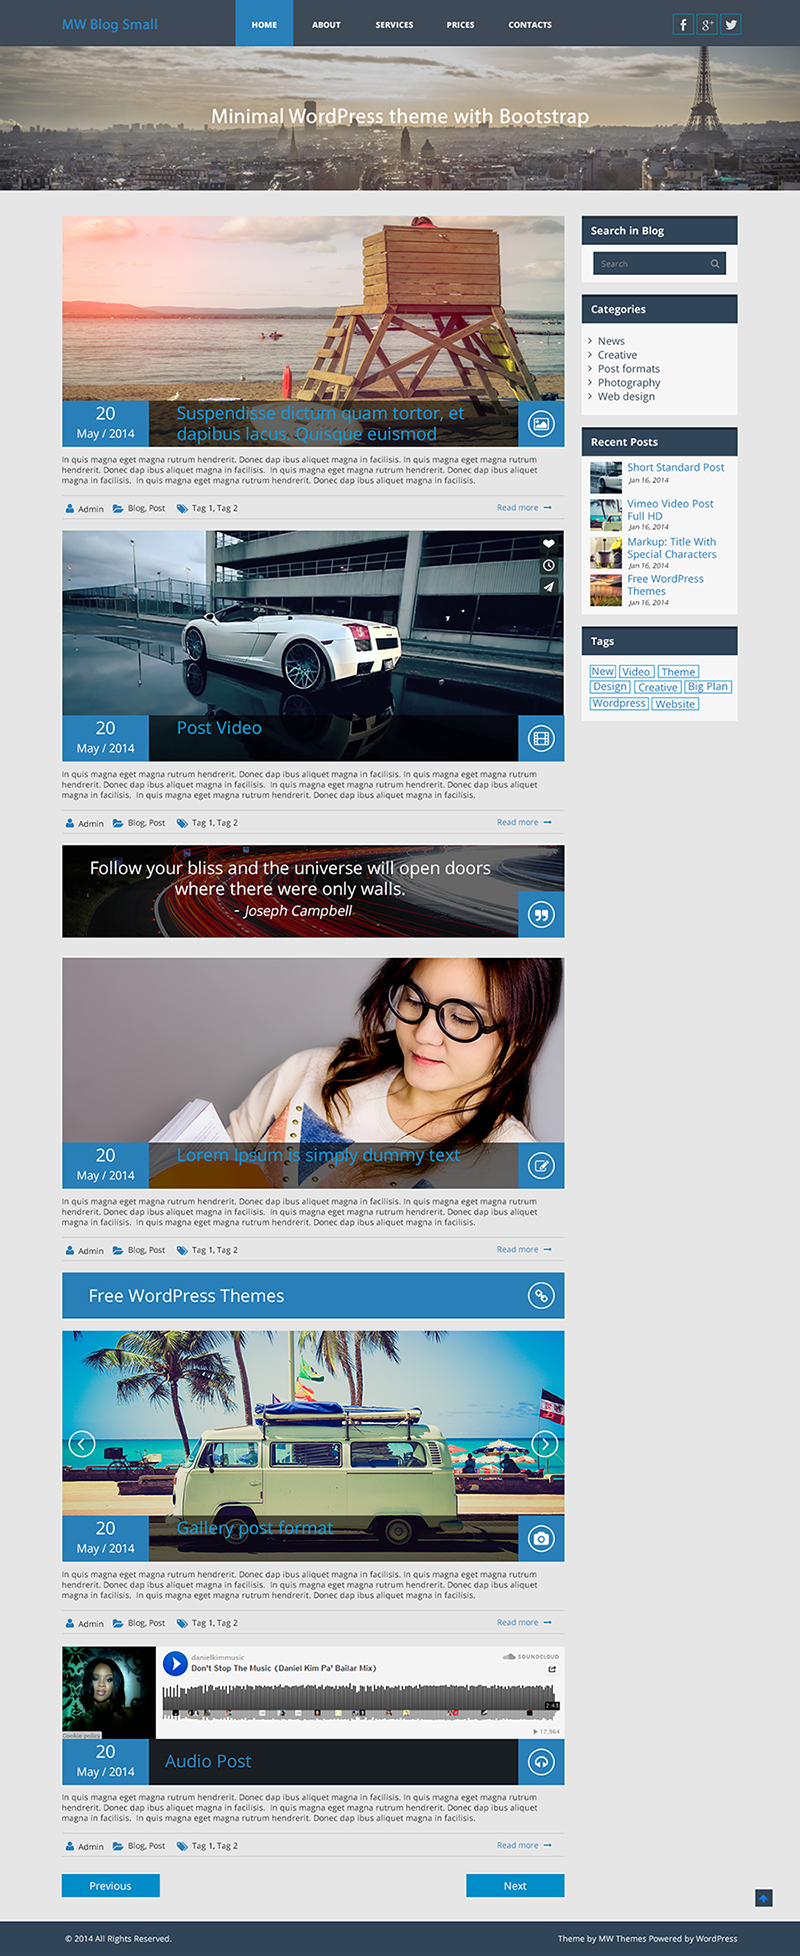 mw-blog-small-free-responsive-theme-wordpress